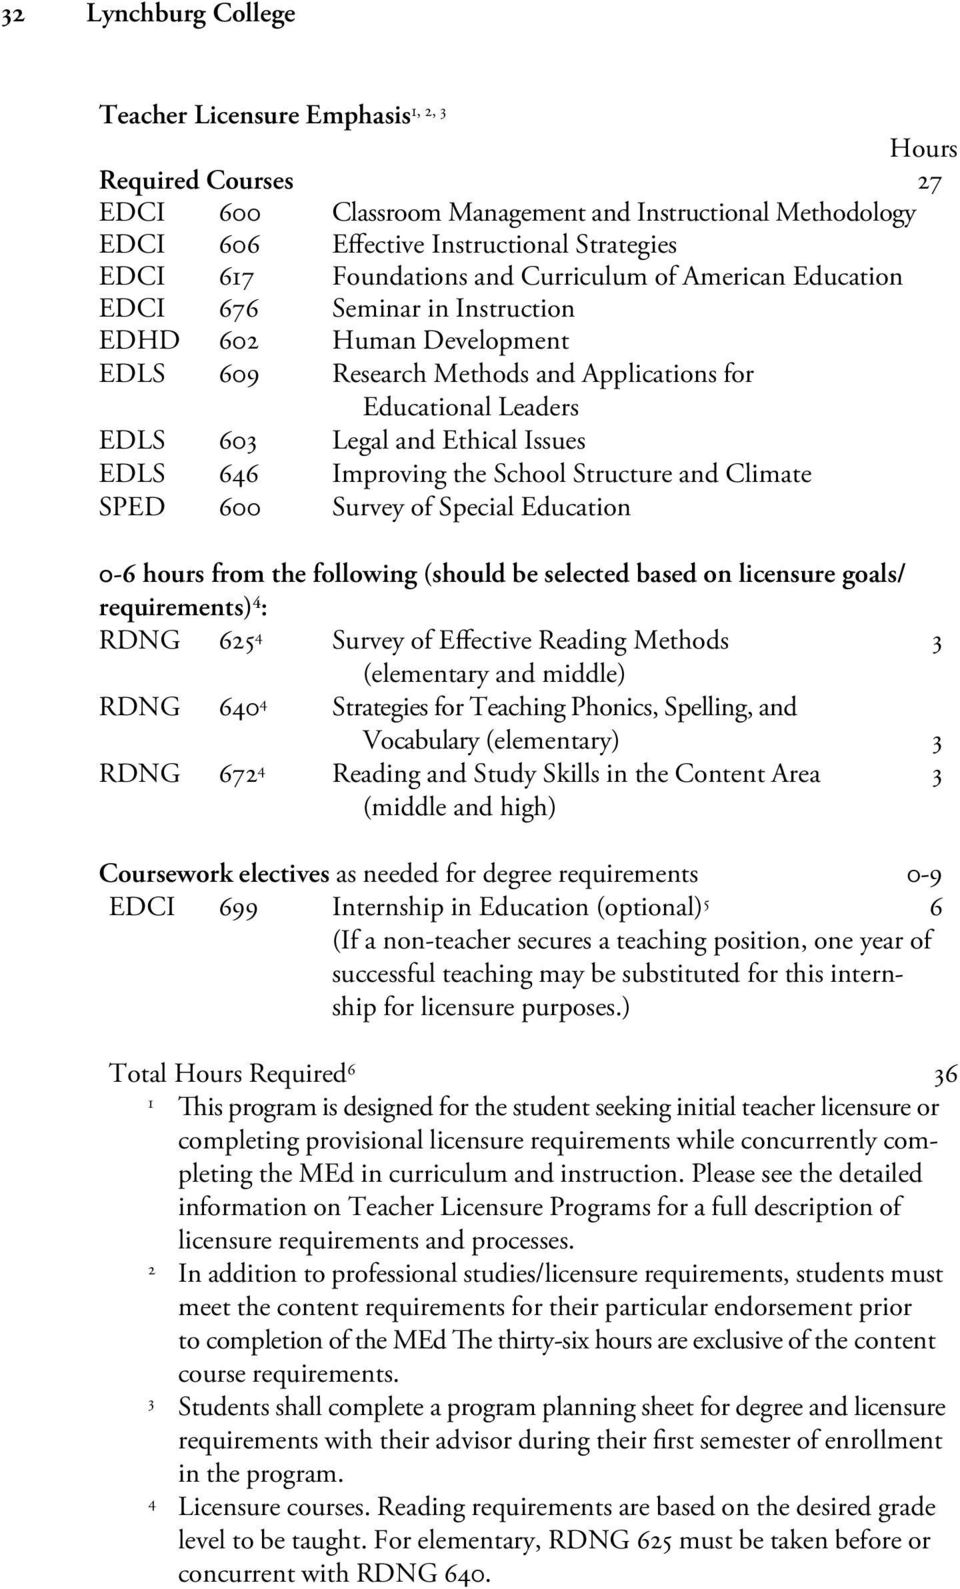 Ethical Issues EDLS 646 Improving the School Structure and Climate SPED 600 Survey of Special Education 0-6 hours from the following (should be selected based on licensure goals/ requirements) 4 :